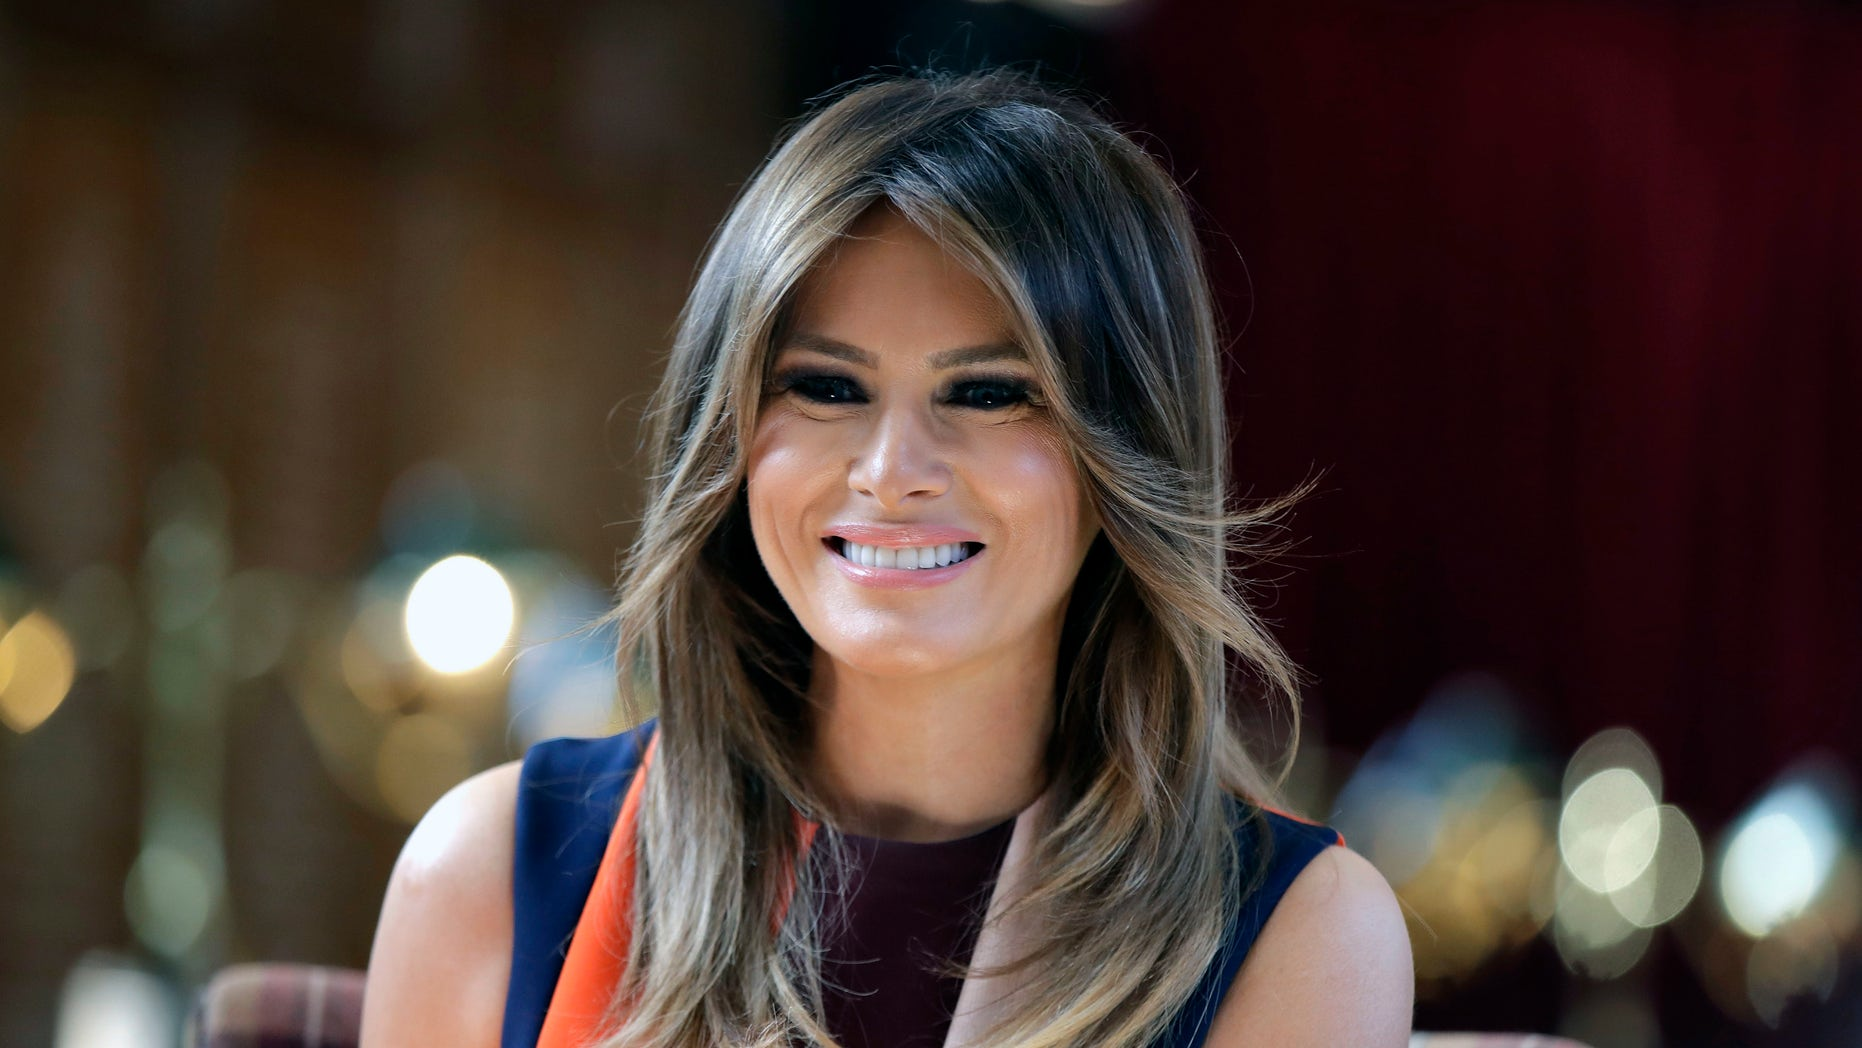 Melania Trump's plane forced to turn back after smoke incident